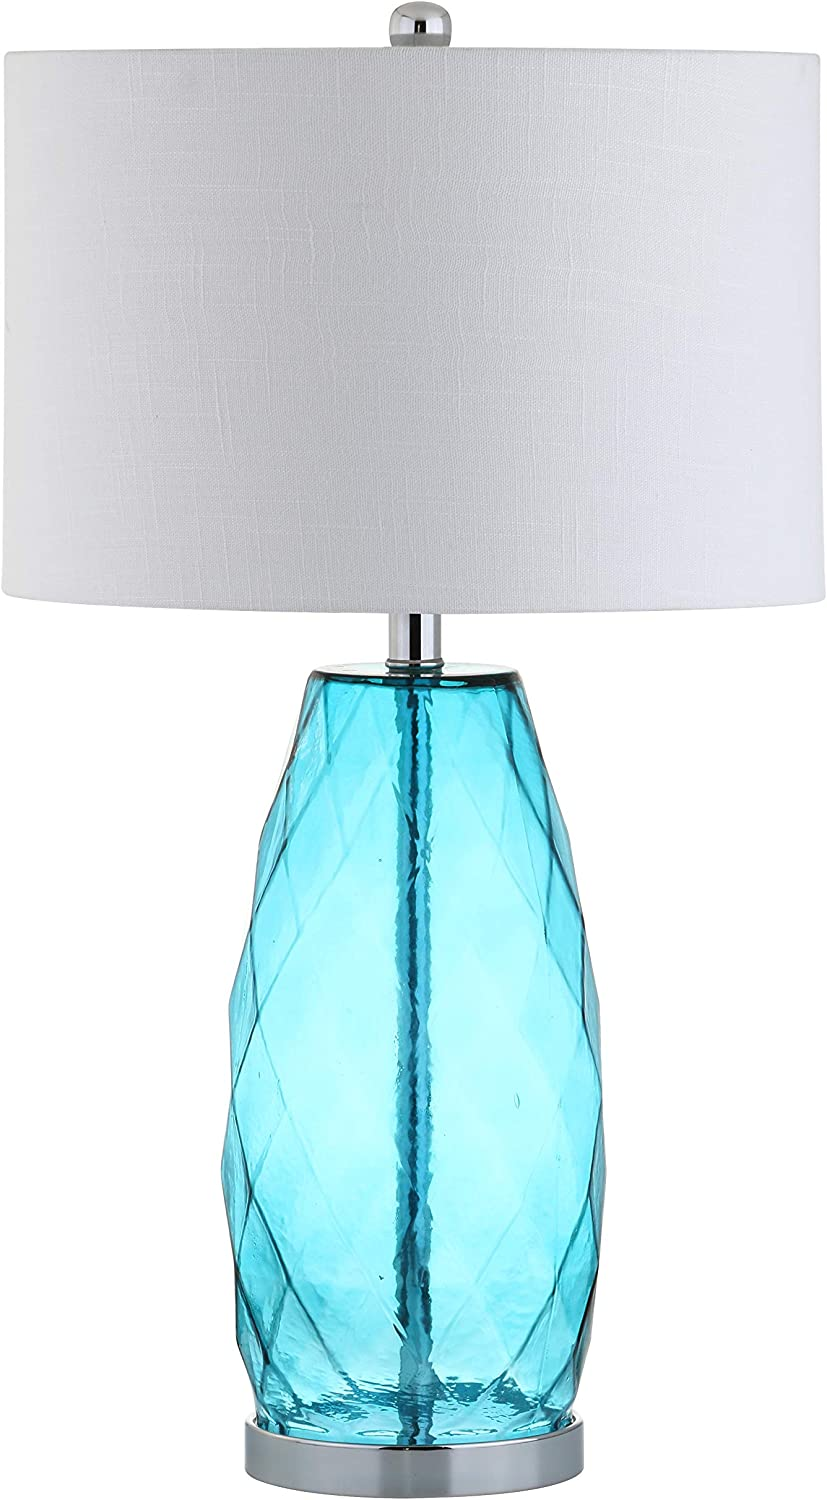 """JONATHAN Y JYL4009B Juliette 26.5"""" Glass/Metal LED Table Lamp, Contemporary, Transitional, Coastal for Bedroom, Living Room, Office, Moroccan Blue"""